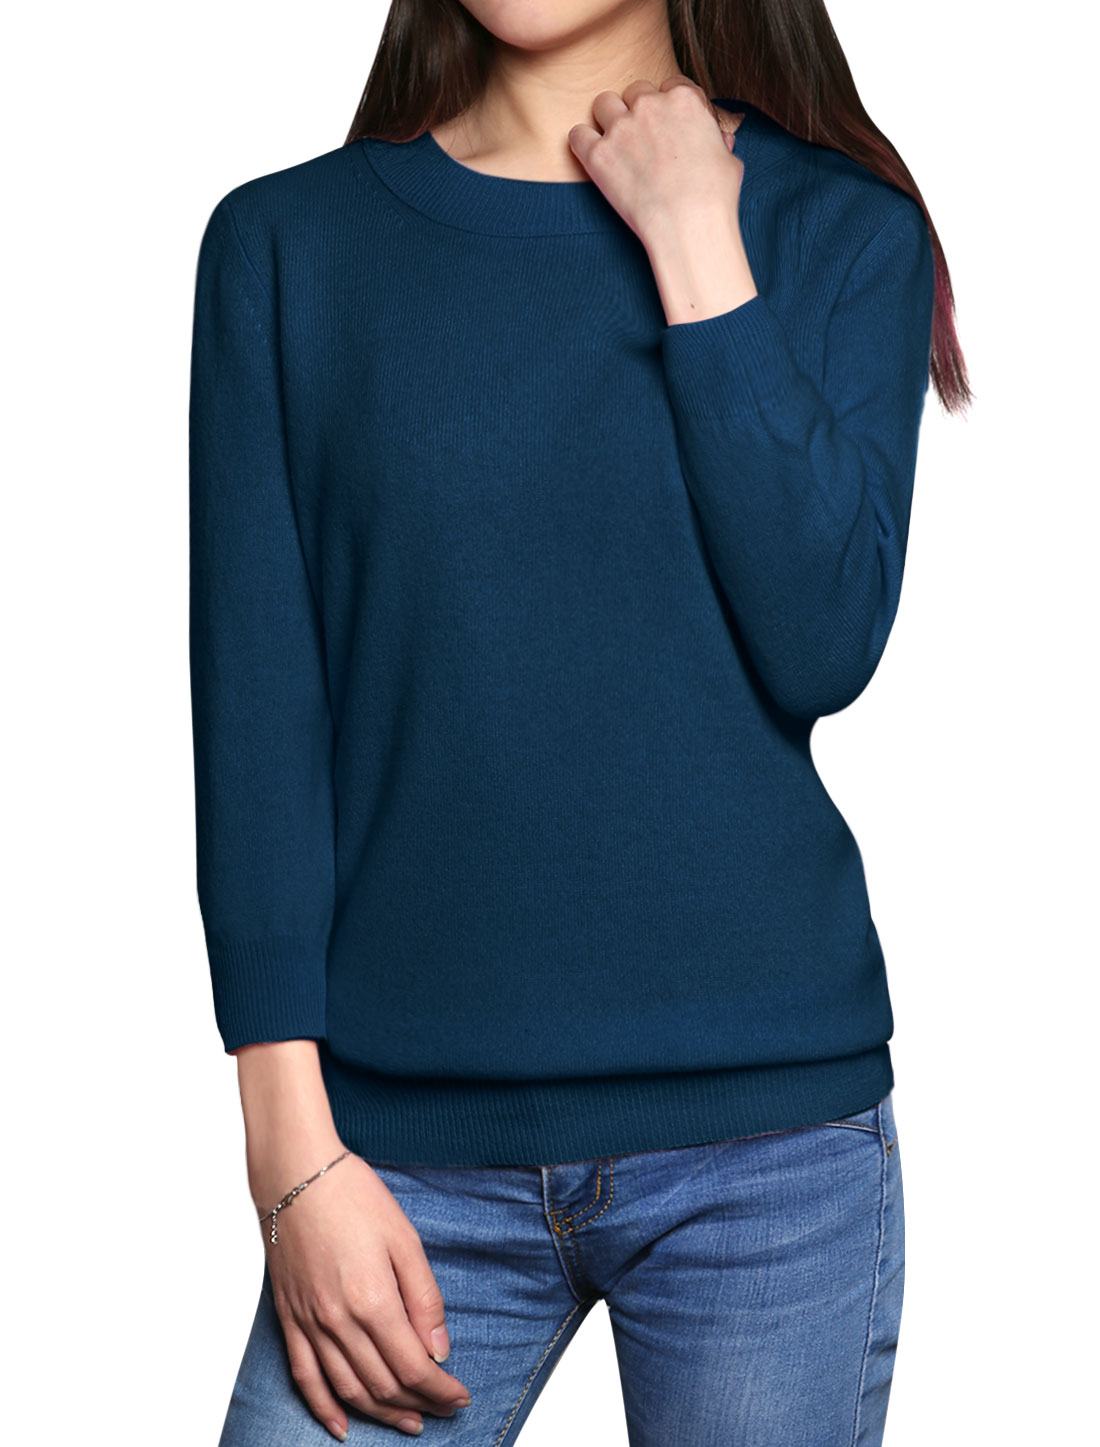 Ladies 3/4 Sleeves Slim Fit Cashmere Sweater Blue S